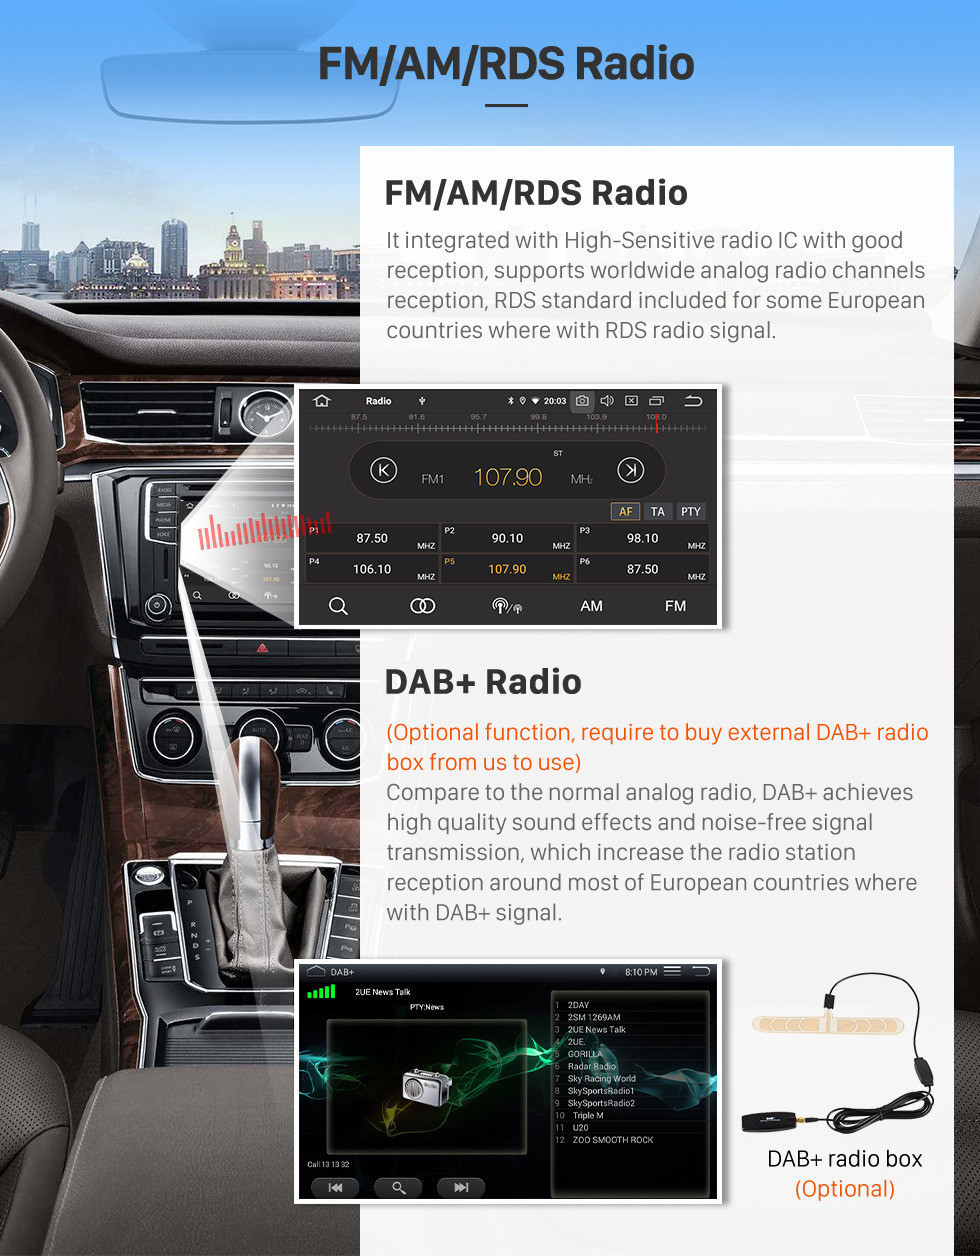 Seicane 8 Inch Android 10.0 HD Touchscreen Car Radio Head Unit For 2007 2008 2009 2010 2011 GMC Acadia GPS Navigation Bluetooth Phone Music WIFI Support OBD2 USB DAB+ Mirror Link Steering Wheel Control Backup Camera